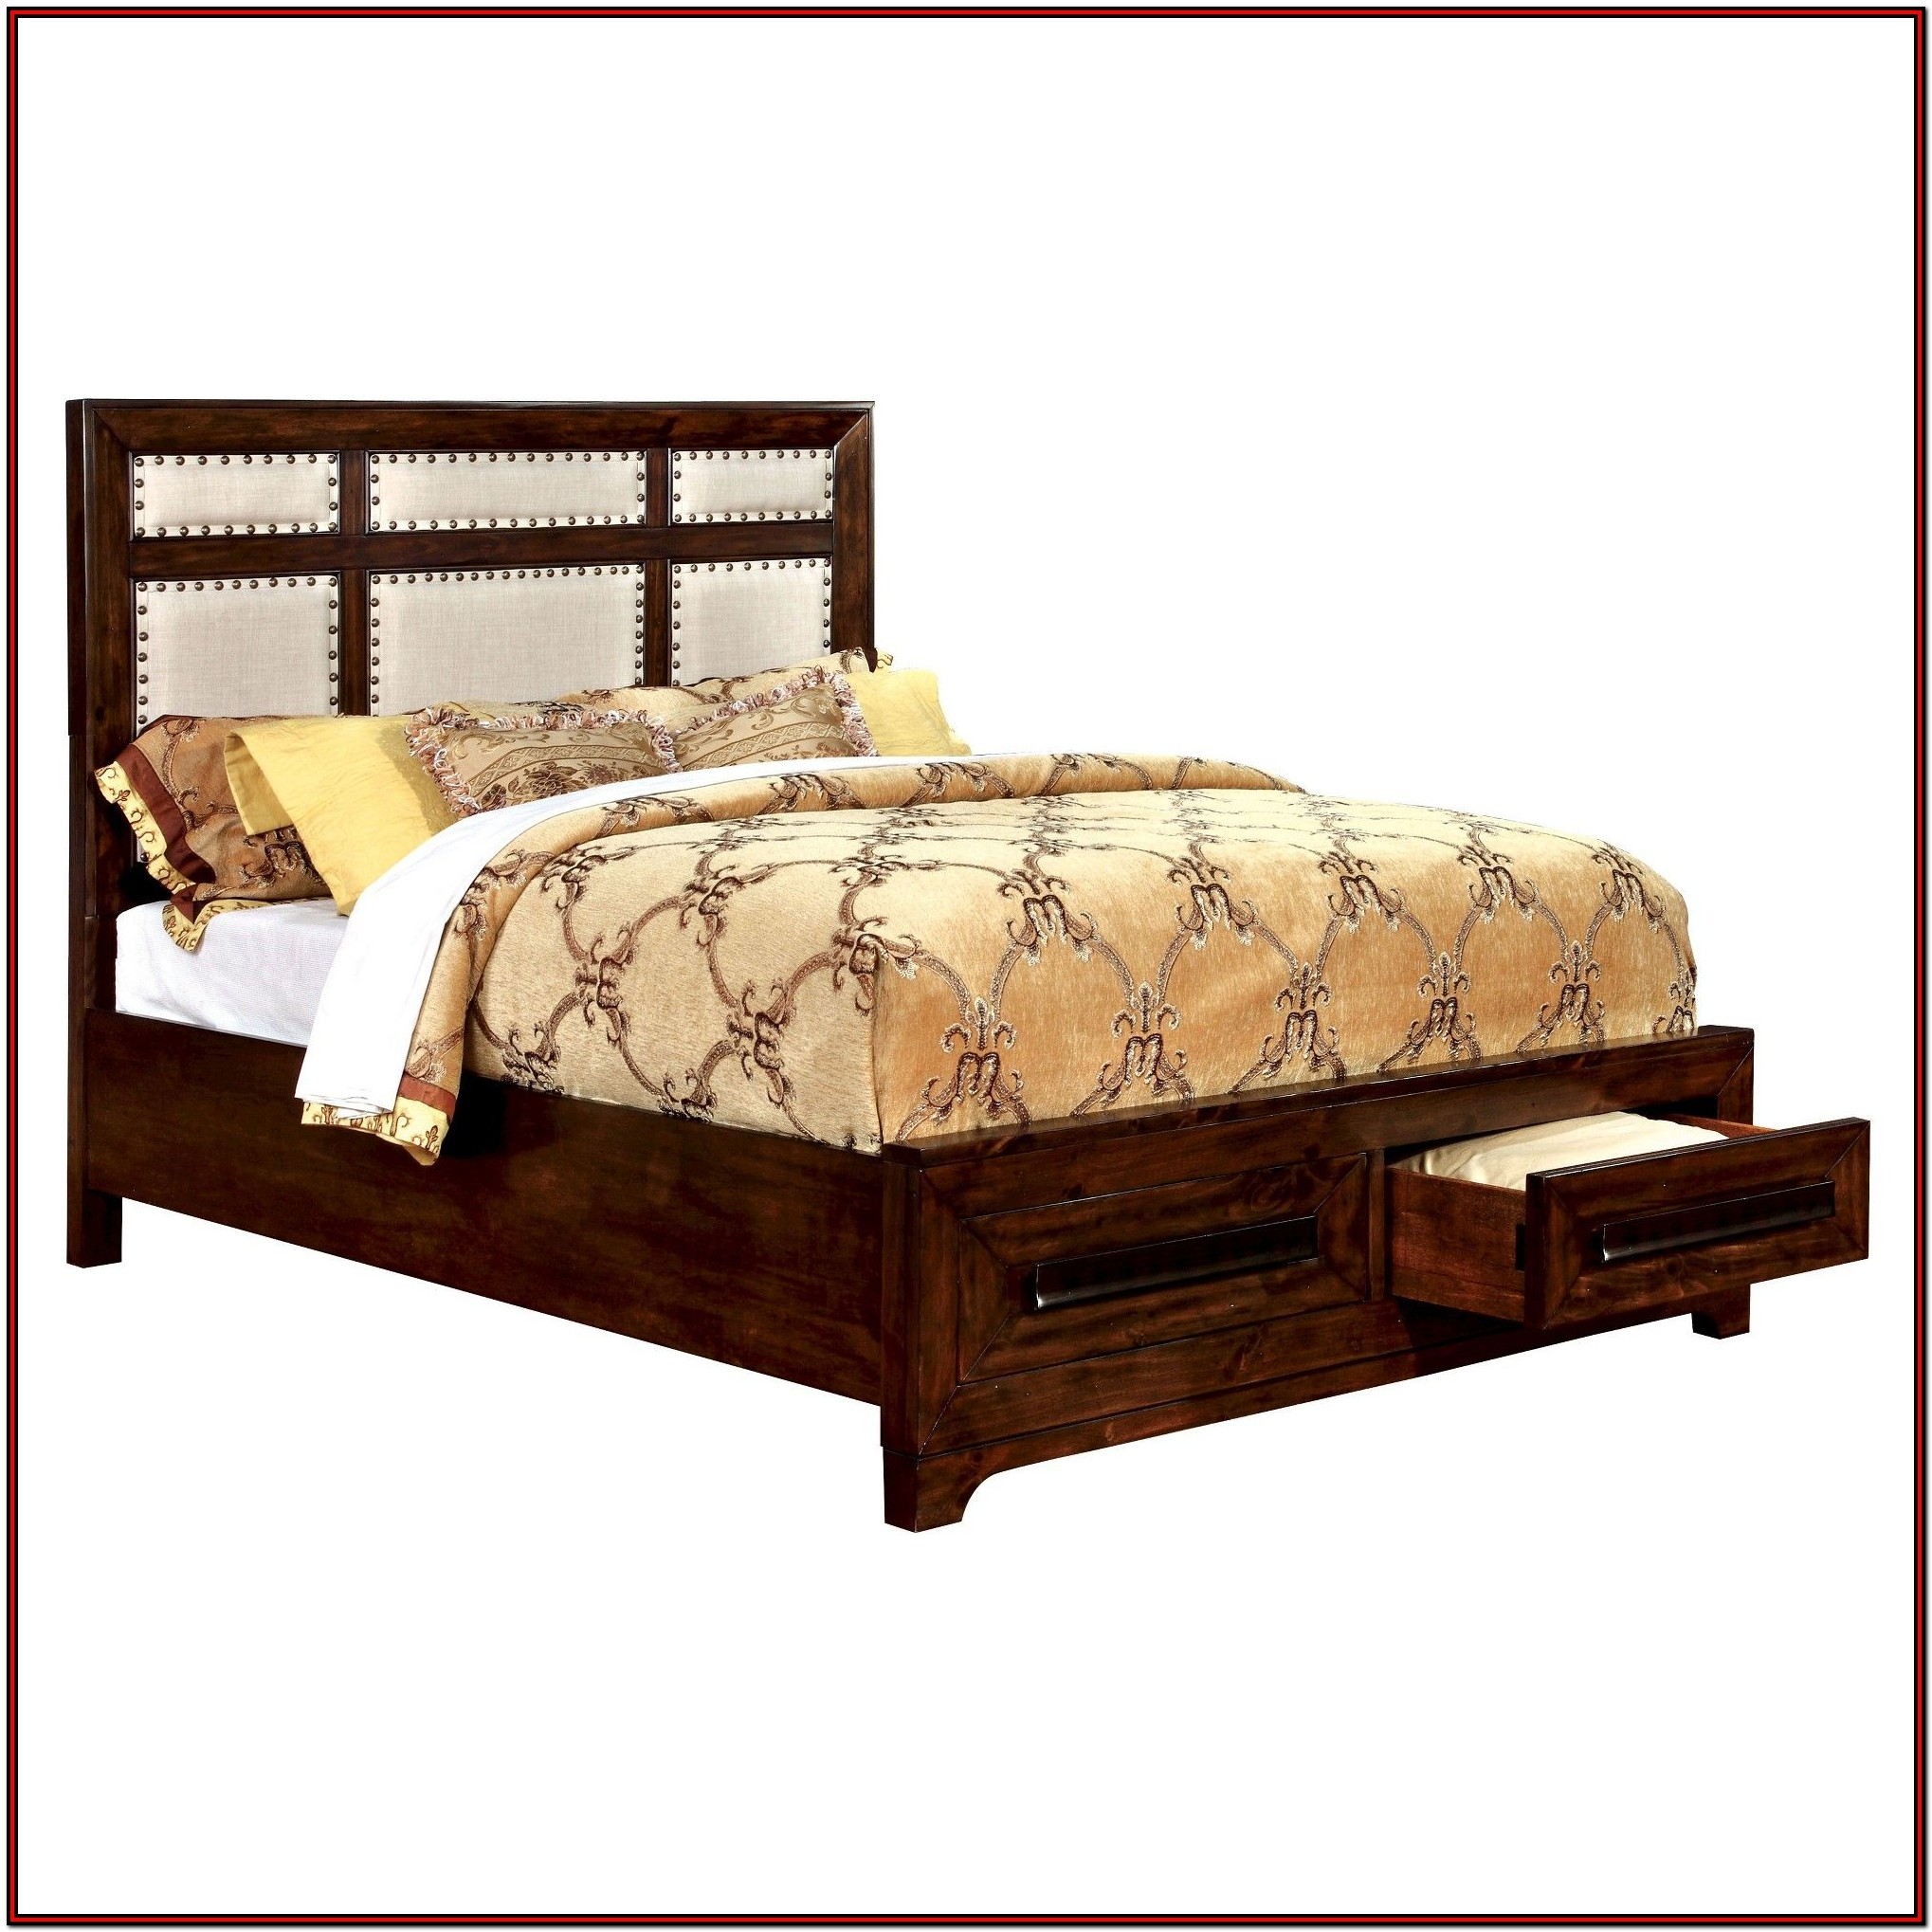 King Size Beds With Storage Drawers Underneath